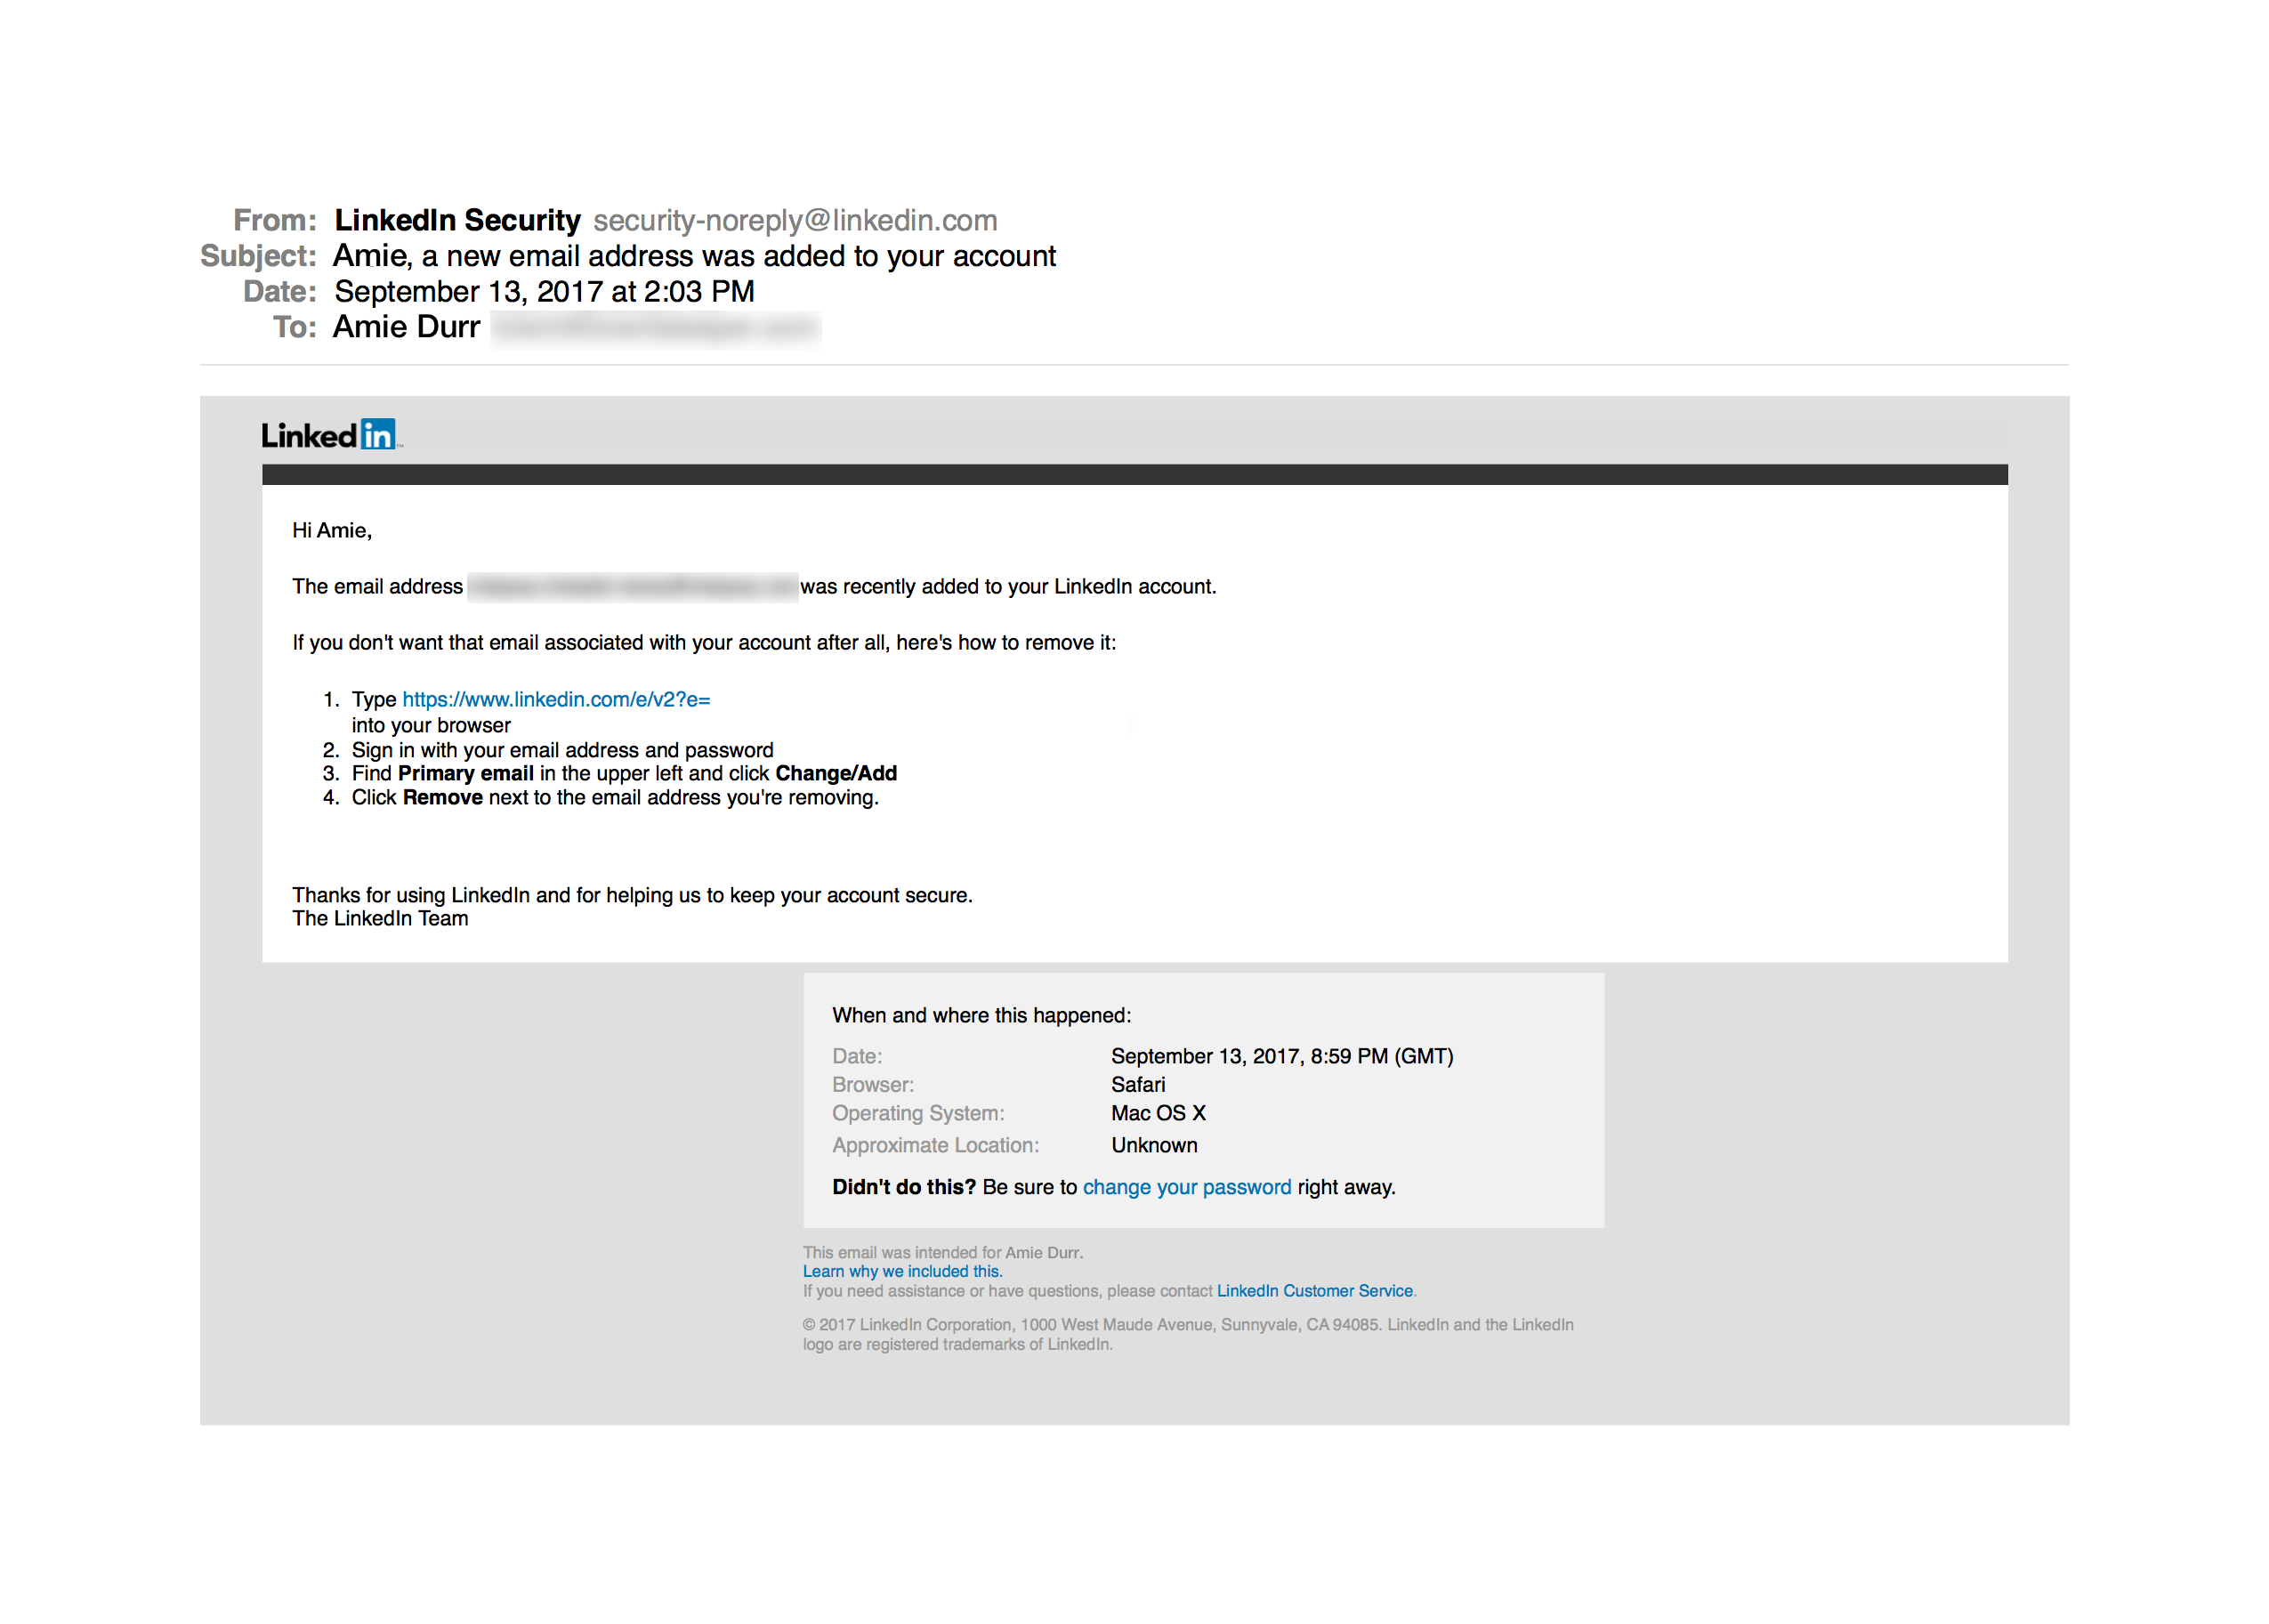 LinkedIn Account Change Product Email